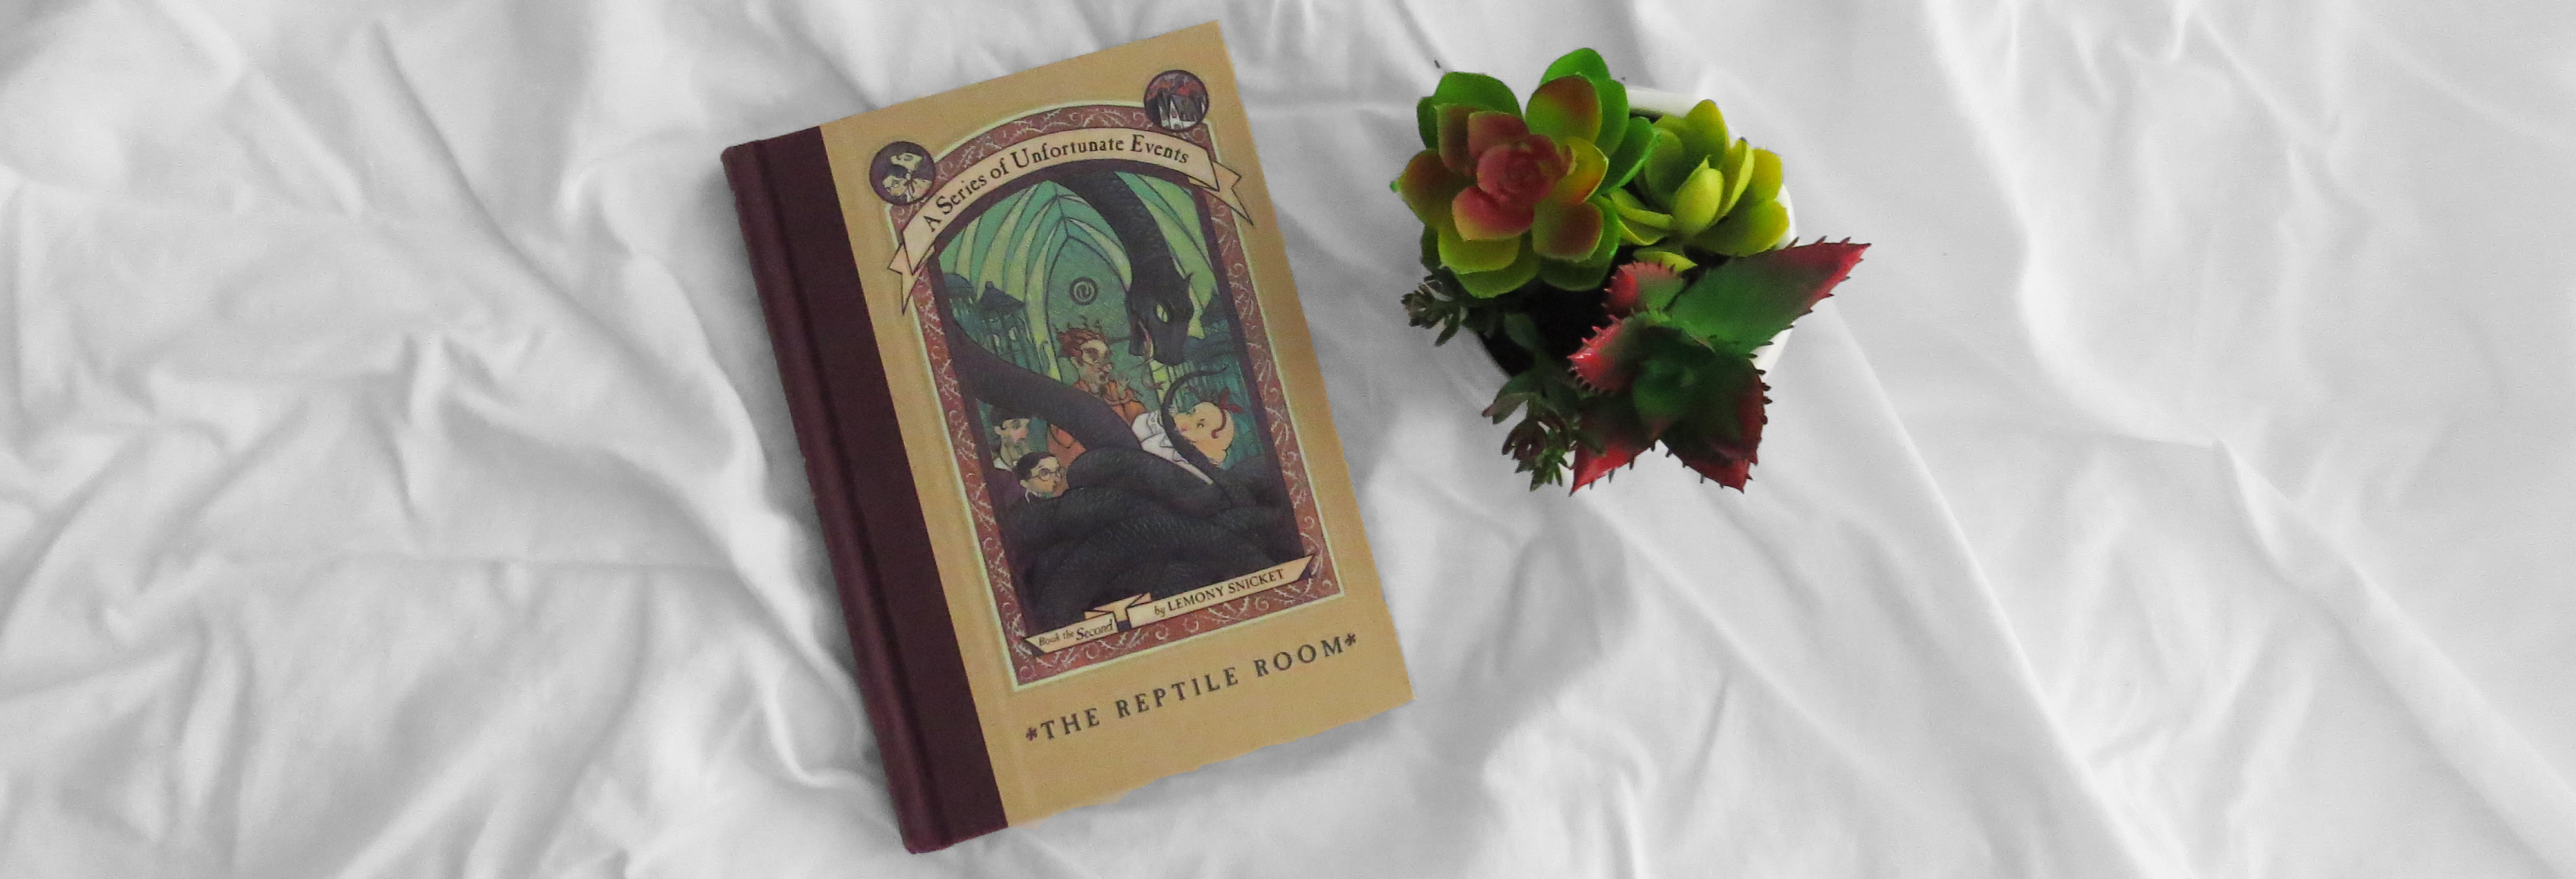 Middle Grade Monday | The Reptile Room by Lemony Snicket